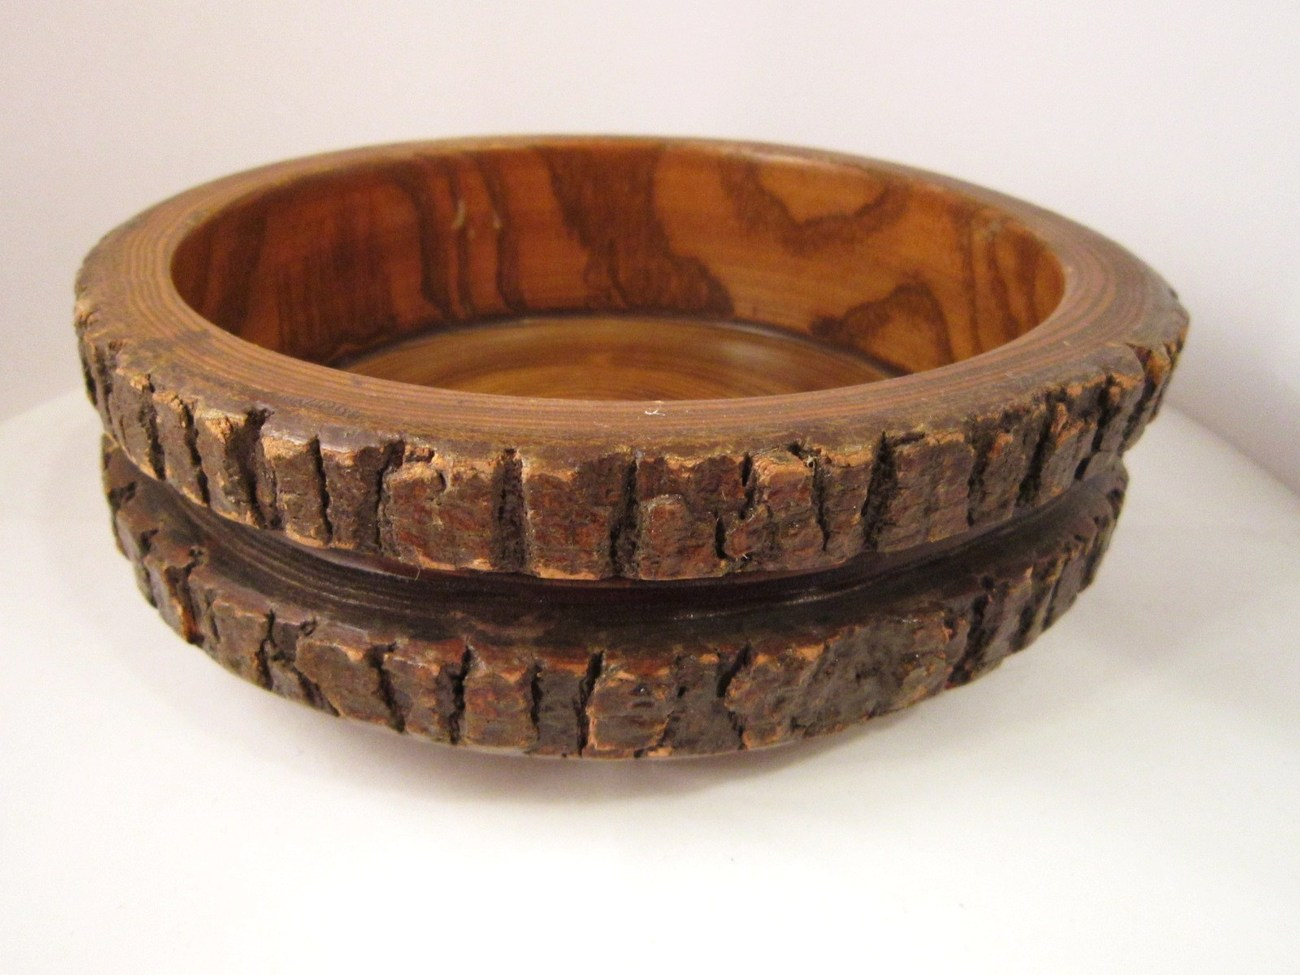 Stump_wooden_nut_bowl_01